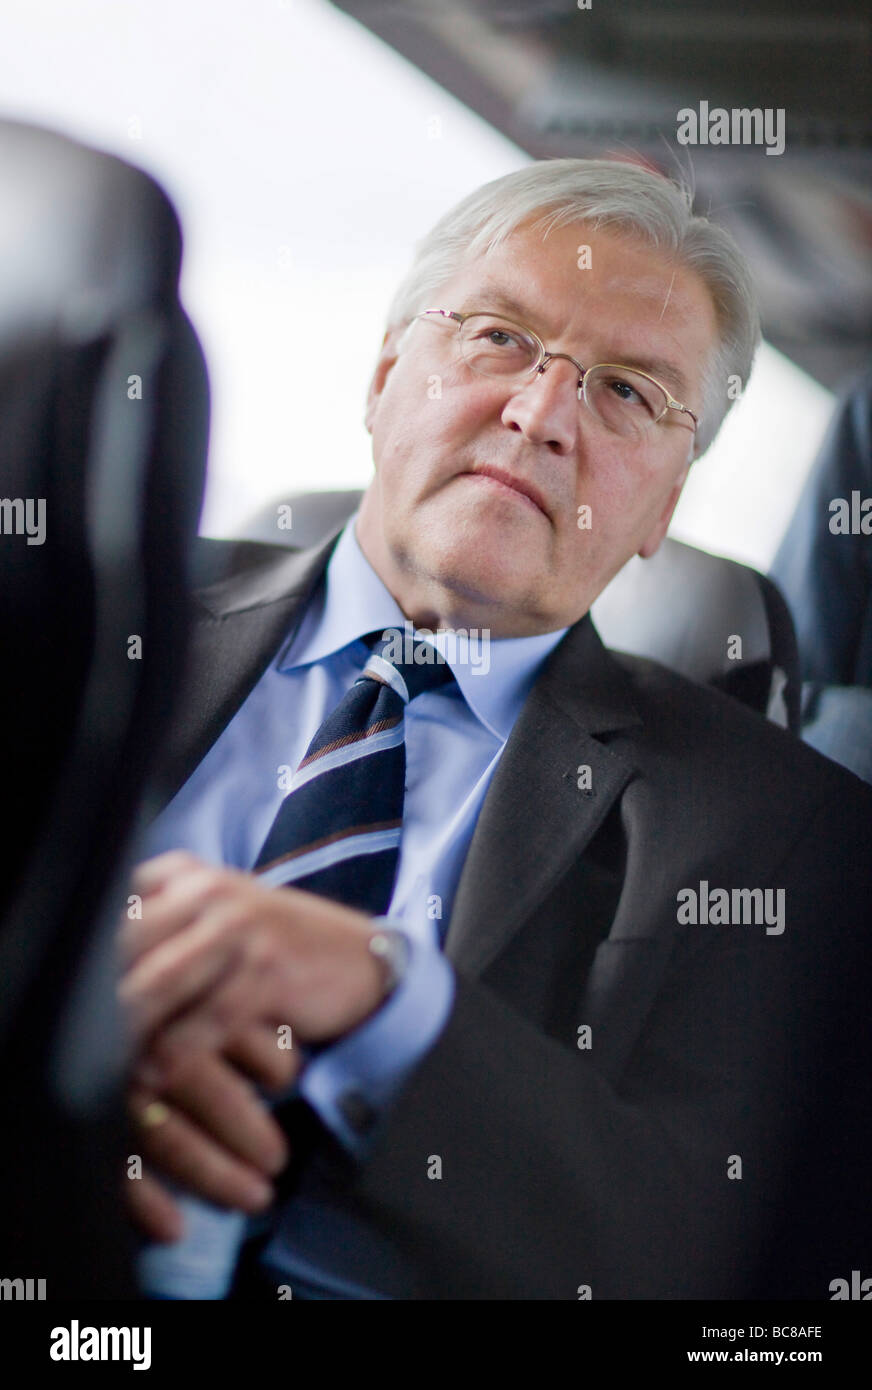 Frank Walter STEINMEIER SPD Federal Minister for Foreign Affairs of Germany and Vice Chancellor - Stock Image